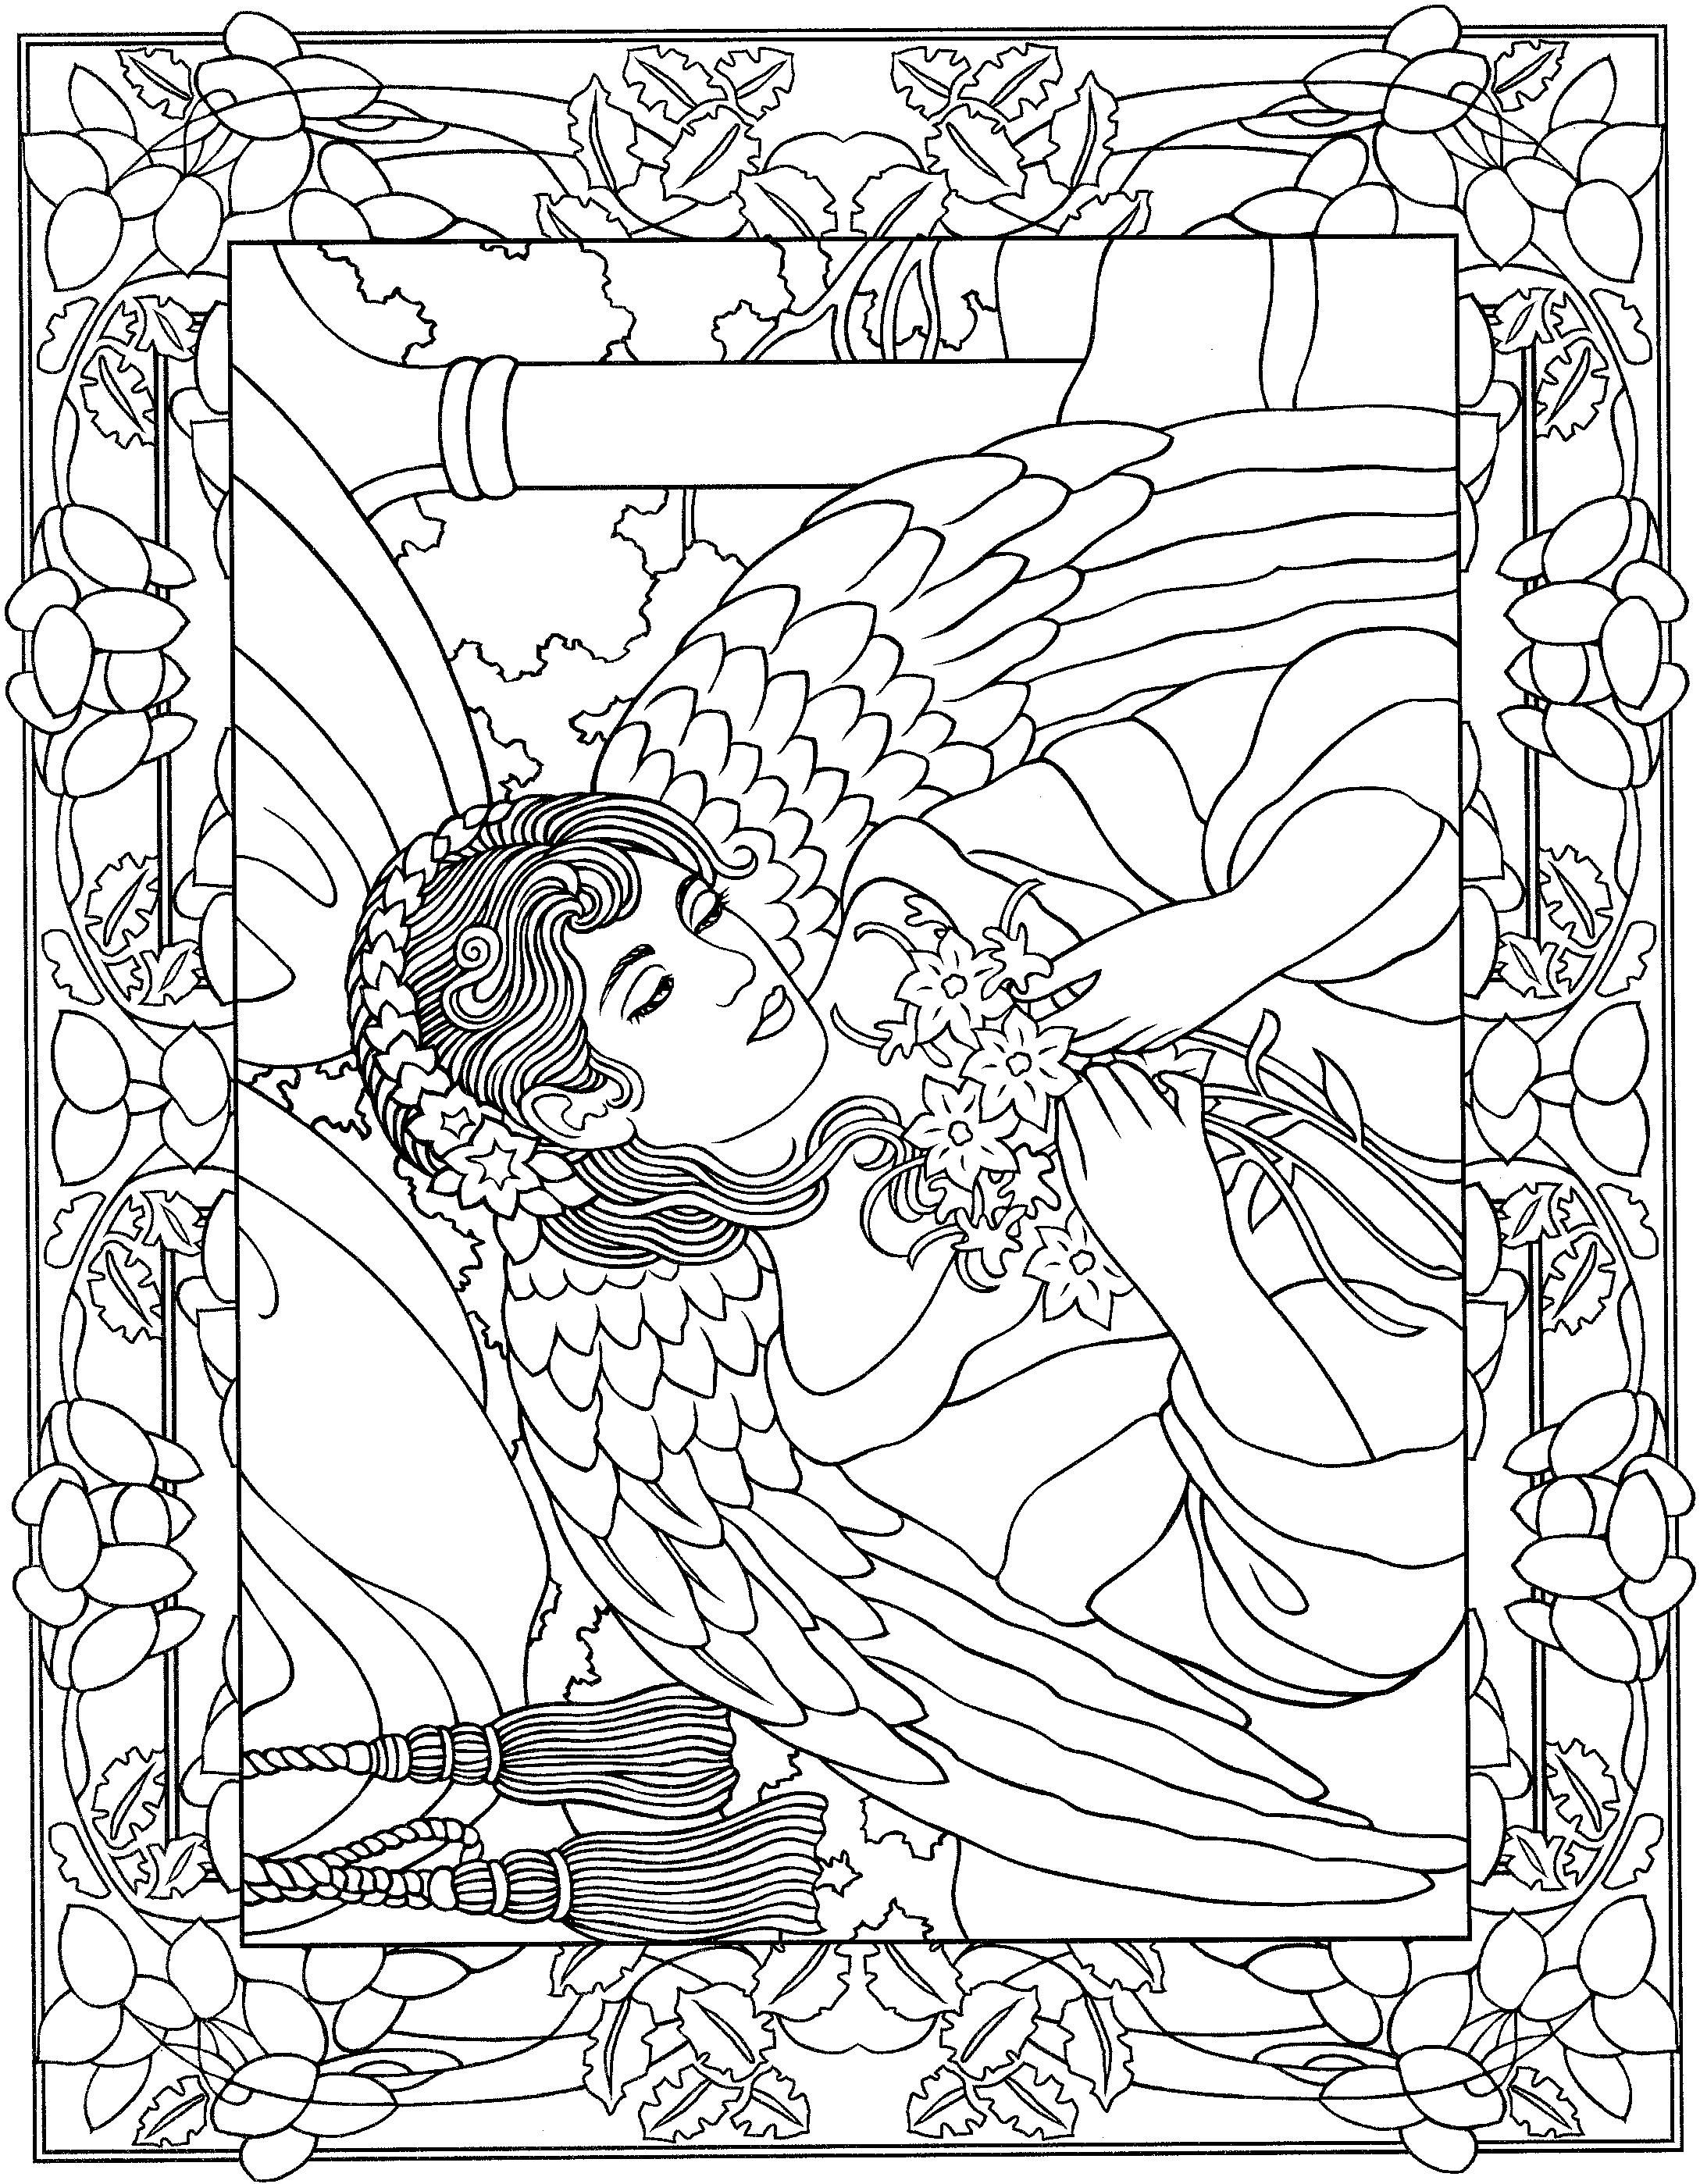 angel coloring pages for adults angel coloring pages for adults coloring home adults coloring angel pages for